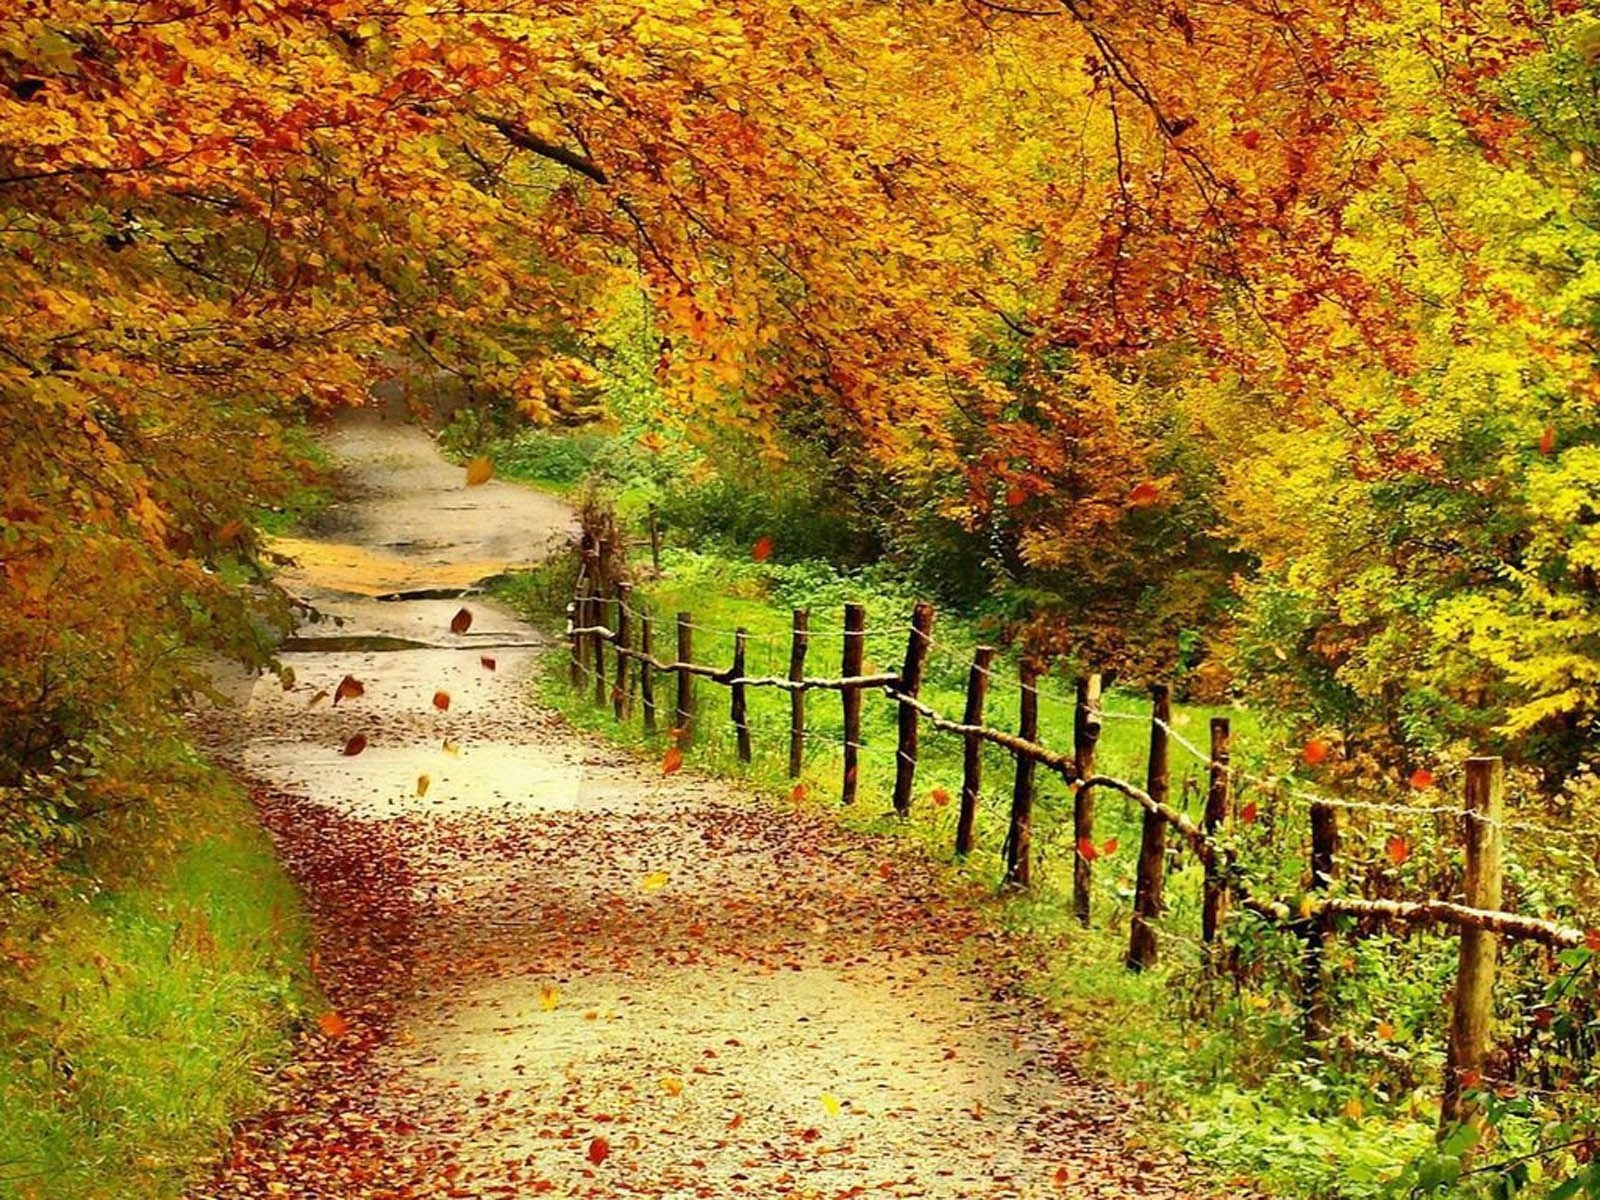 beautiful autumn scenery | tag: beautiful autumn scenery wallpapers